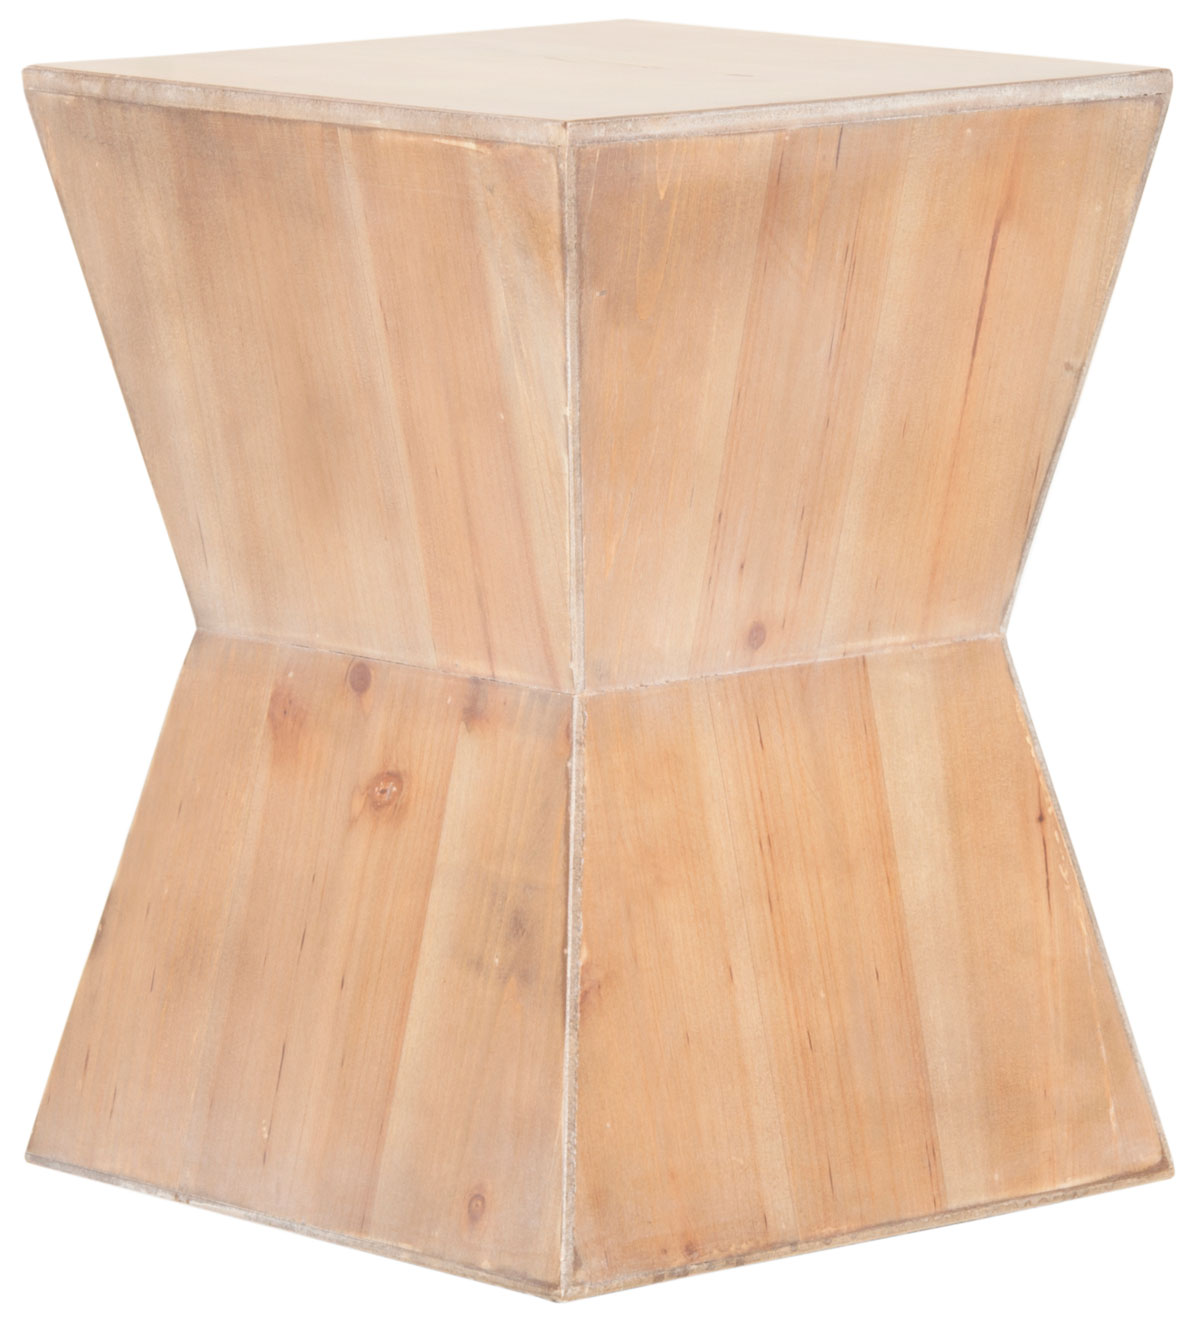 Amh6618b Accent Tables Furniture By Safavieh